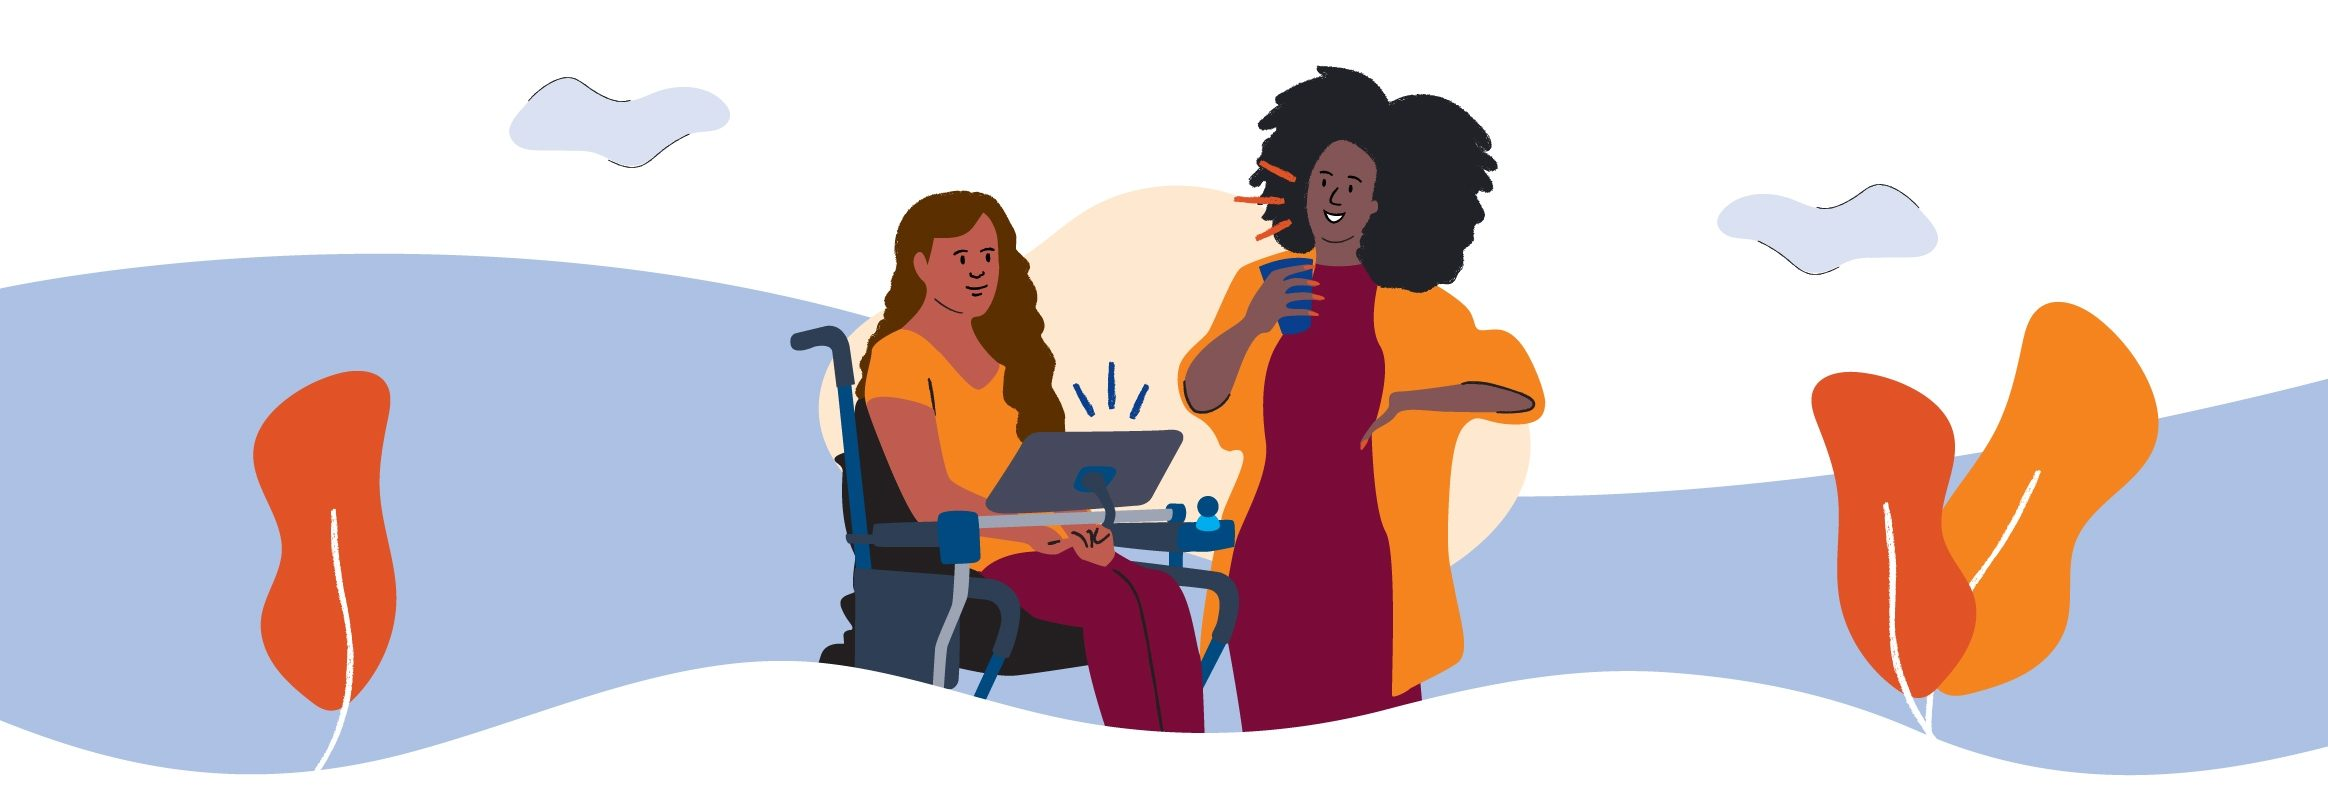 Two black women talking. One is in wheel chair using an iPad to talk. The other one is standing, chatting with the wheelchair user and holding a cup